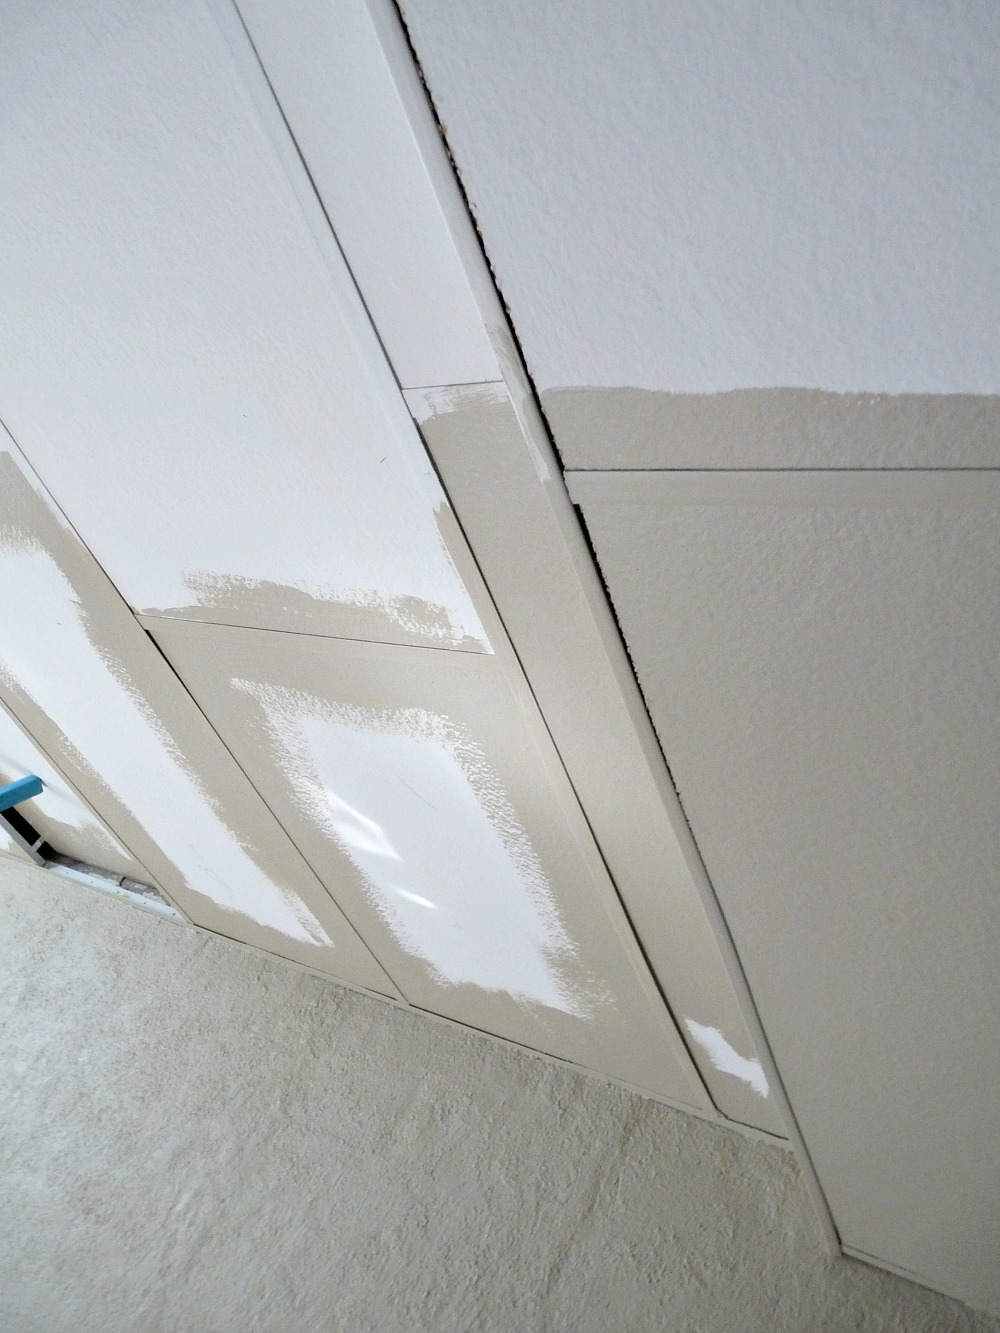 Drop ceiling tiles billo ceiling panels armstrong ceilings common cannot remove ceiling tiles hereu0027s how to paint them painted drop ceiling dailygadgetfo Images